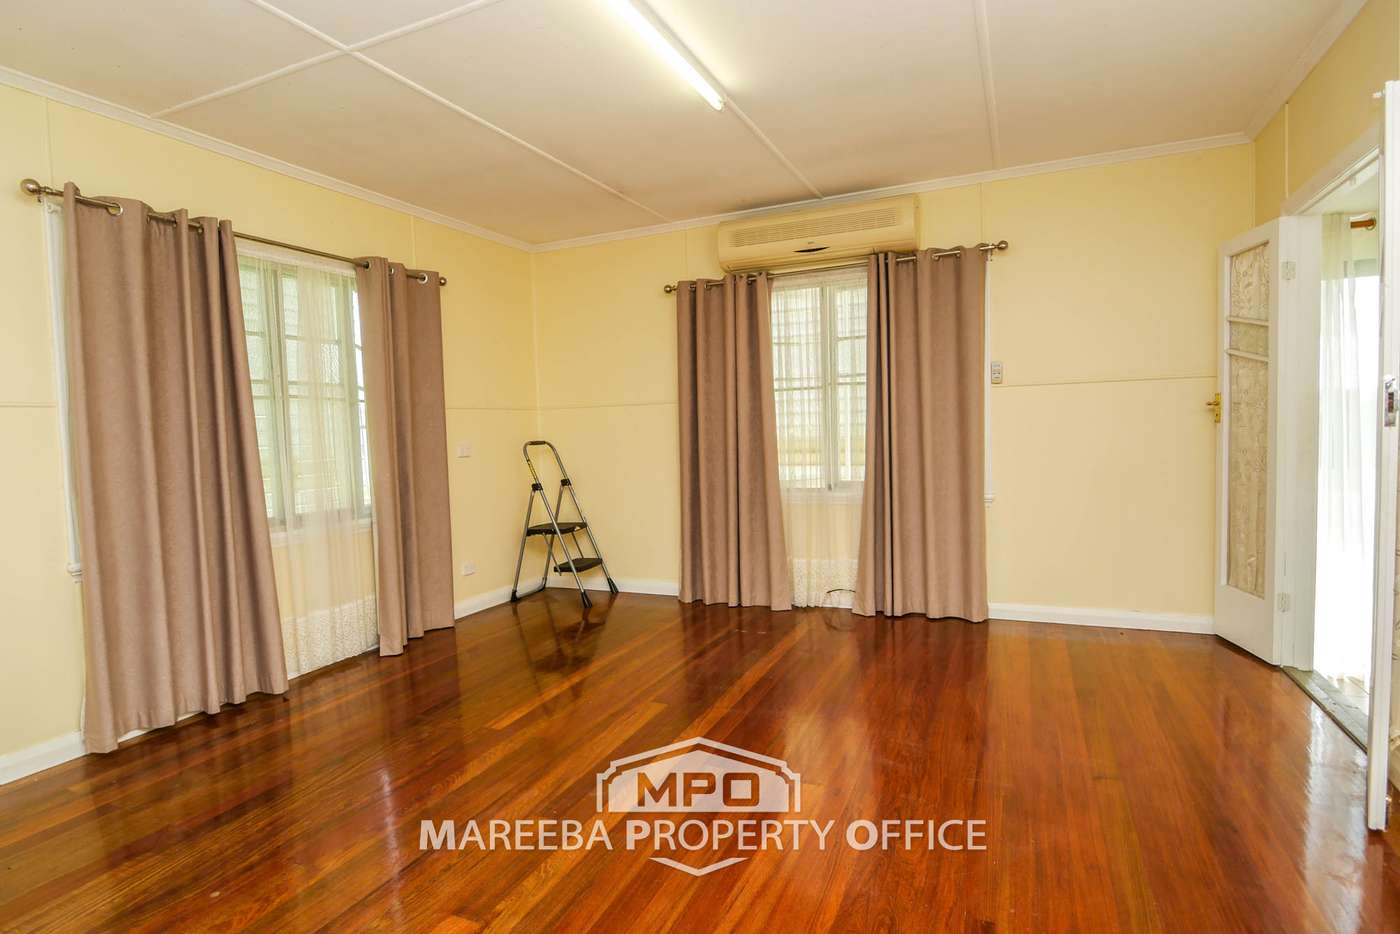 Seventh view of Homely house listing, 8 Downs Street, Mareeba QLD 4880